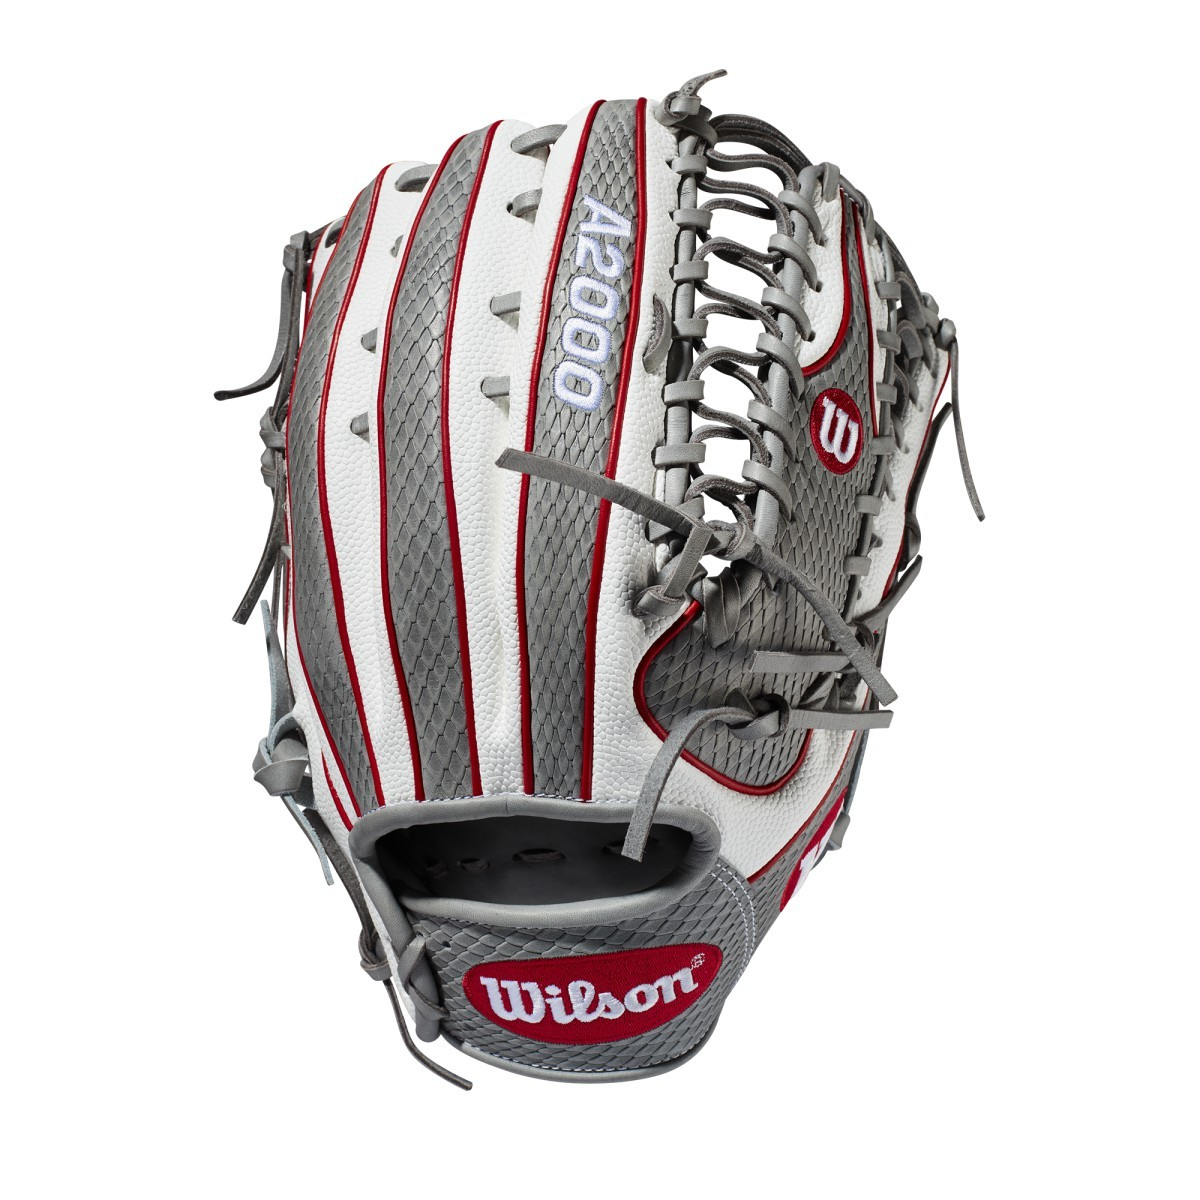 wilson-a2000-baseball-glove-12-75-march-2019-gotm-ot6ss-right-hand-throw WTA20RB19LEMAR-RightHandThrow Wilson  Are you an outfielder who loved the February SnakeSkin-style GOTM model